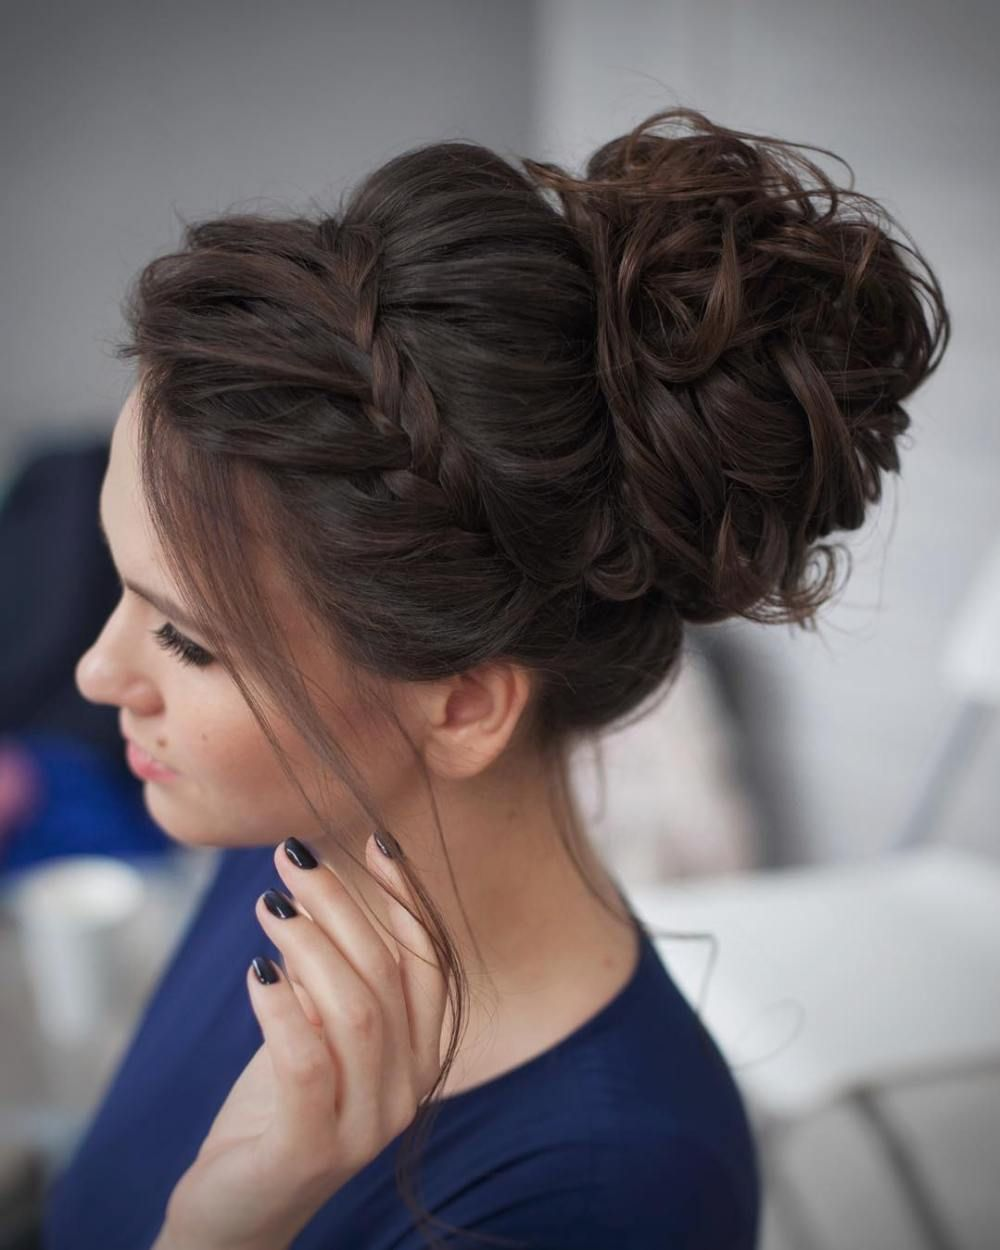 Curly Messy Bun Prom Updo Bridesmaids Updos Hair Wedding Cute Hairstyles